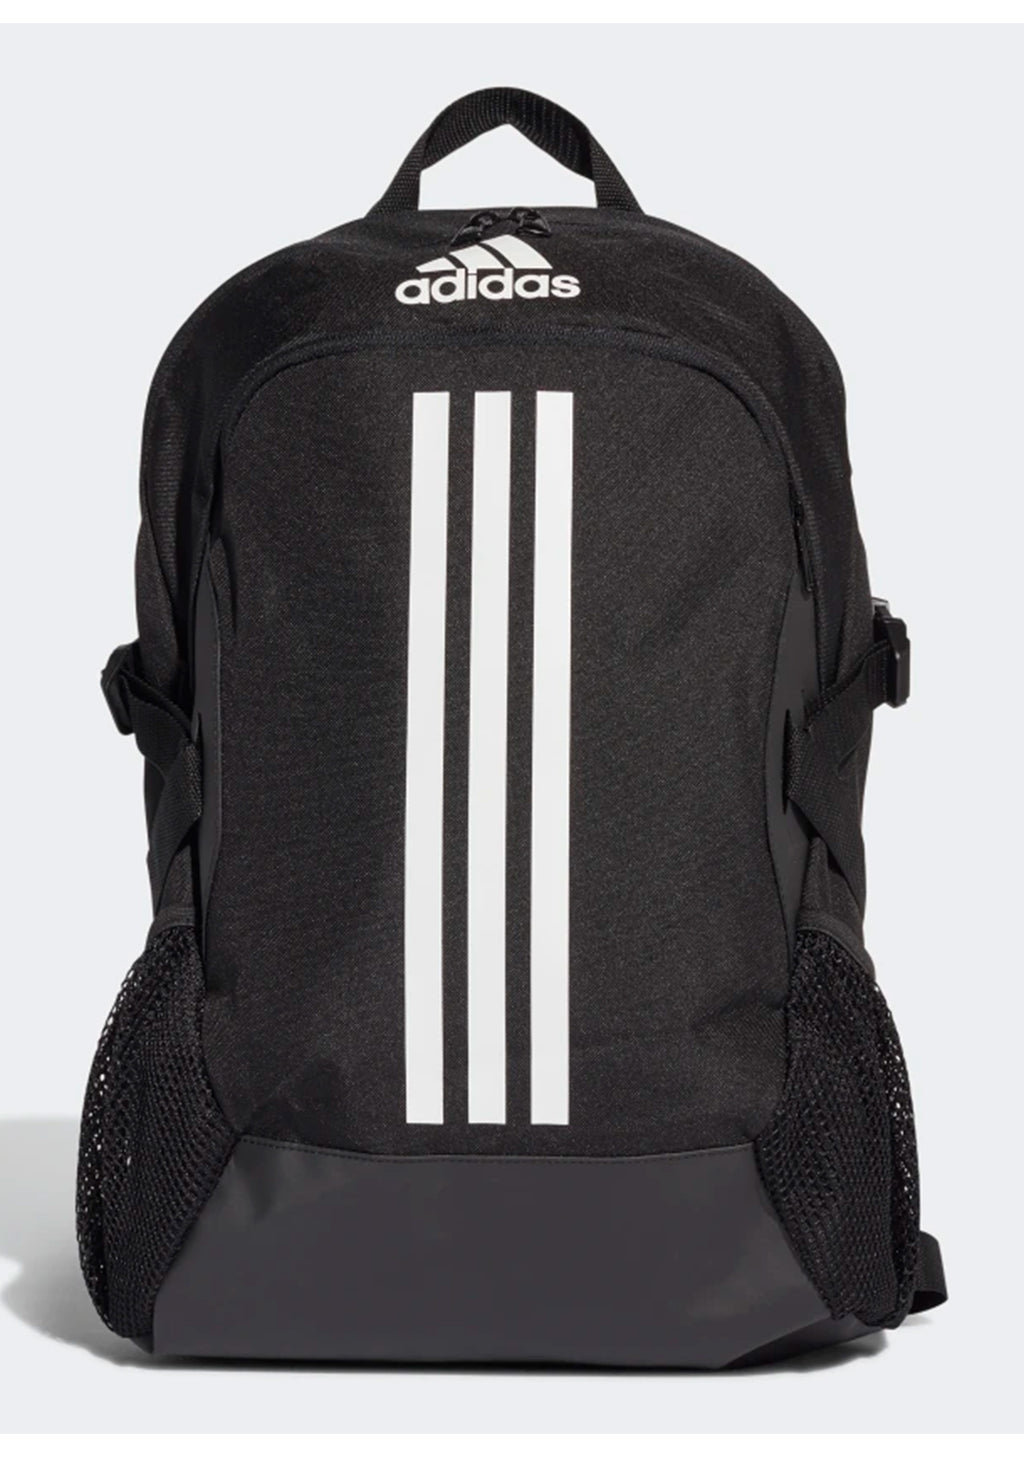 ADIDAS POWER 5 BACKPACK BLACK<BR> FI7968